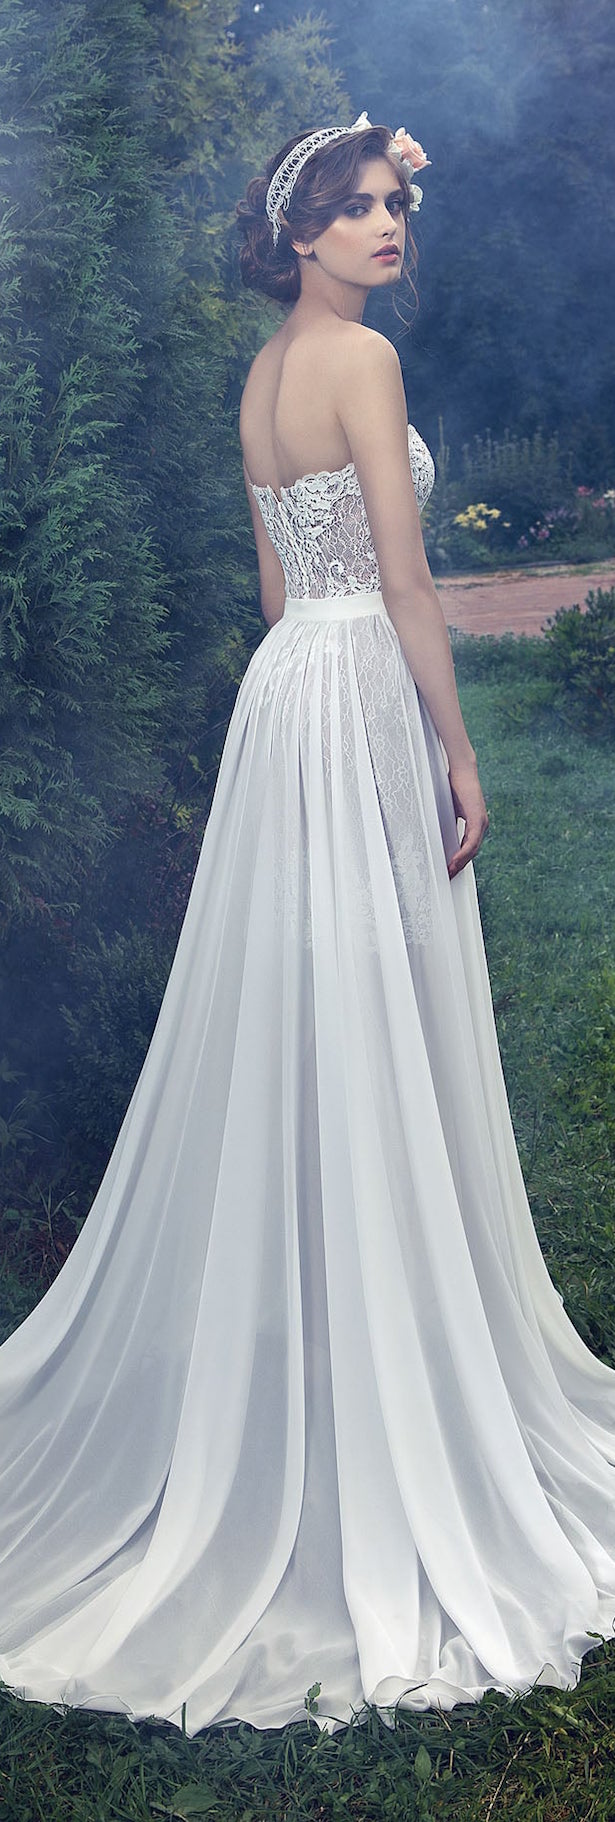 Milva 2016 wedding dresses fairy gardens collection belle the milva 2016 wedding dresses junglespirit Choice Image